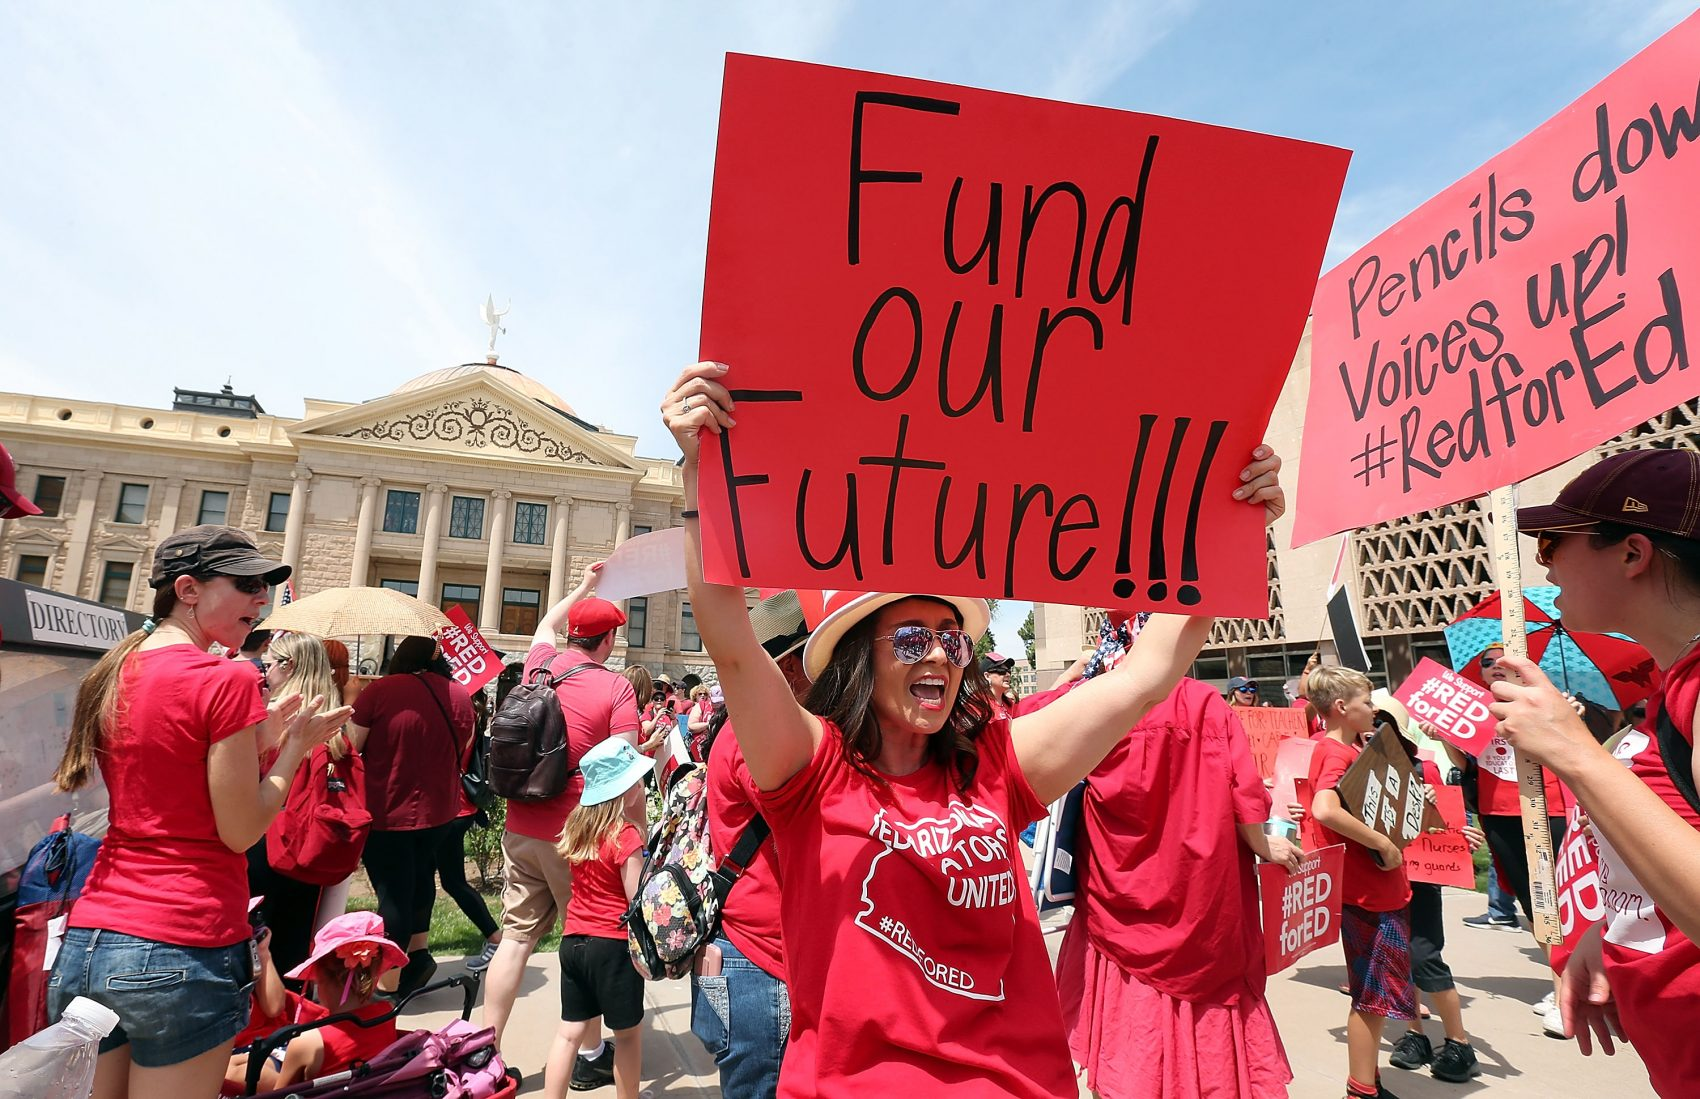 An Arizona teacher holds up a sign in front of the State Capitol during a #REDforED rally on April 26, 2018 in Phoenix, Ariz. Teachers statewide staged a walkout strike on Thursday in support of better wages and state funding for public schools. (Ralph Freso/Getty Images)